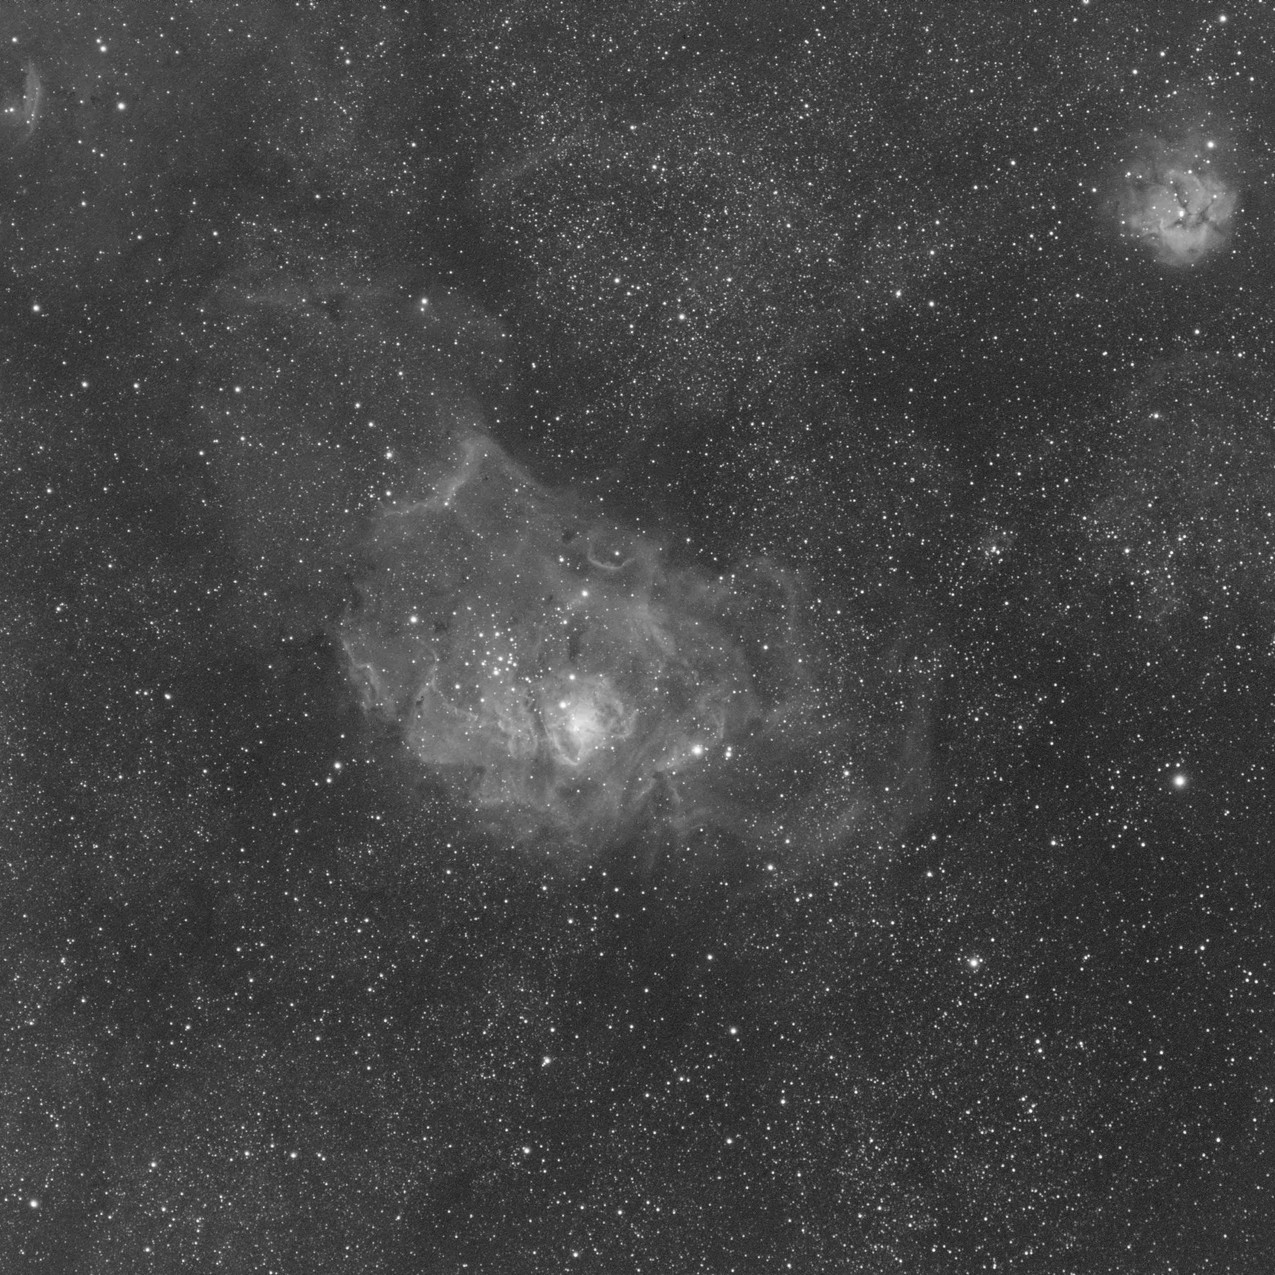 M20 the trifid nebula single shot of 3 minutes with a ZWO ASI 1600MM-pro CMOS Astrophotography camera and Meade 70mm APO Astrograph telescope - Sulfur II narrowband